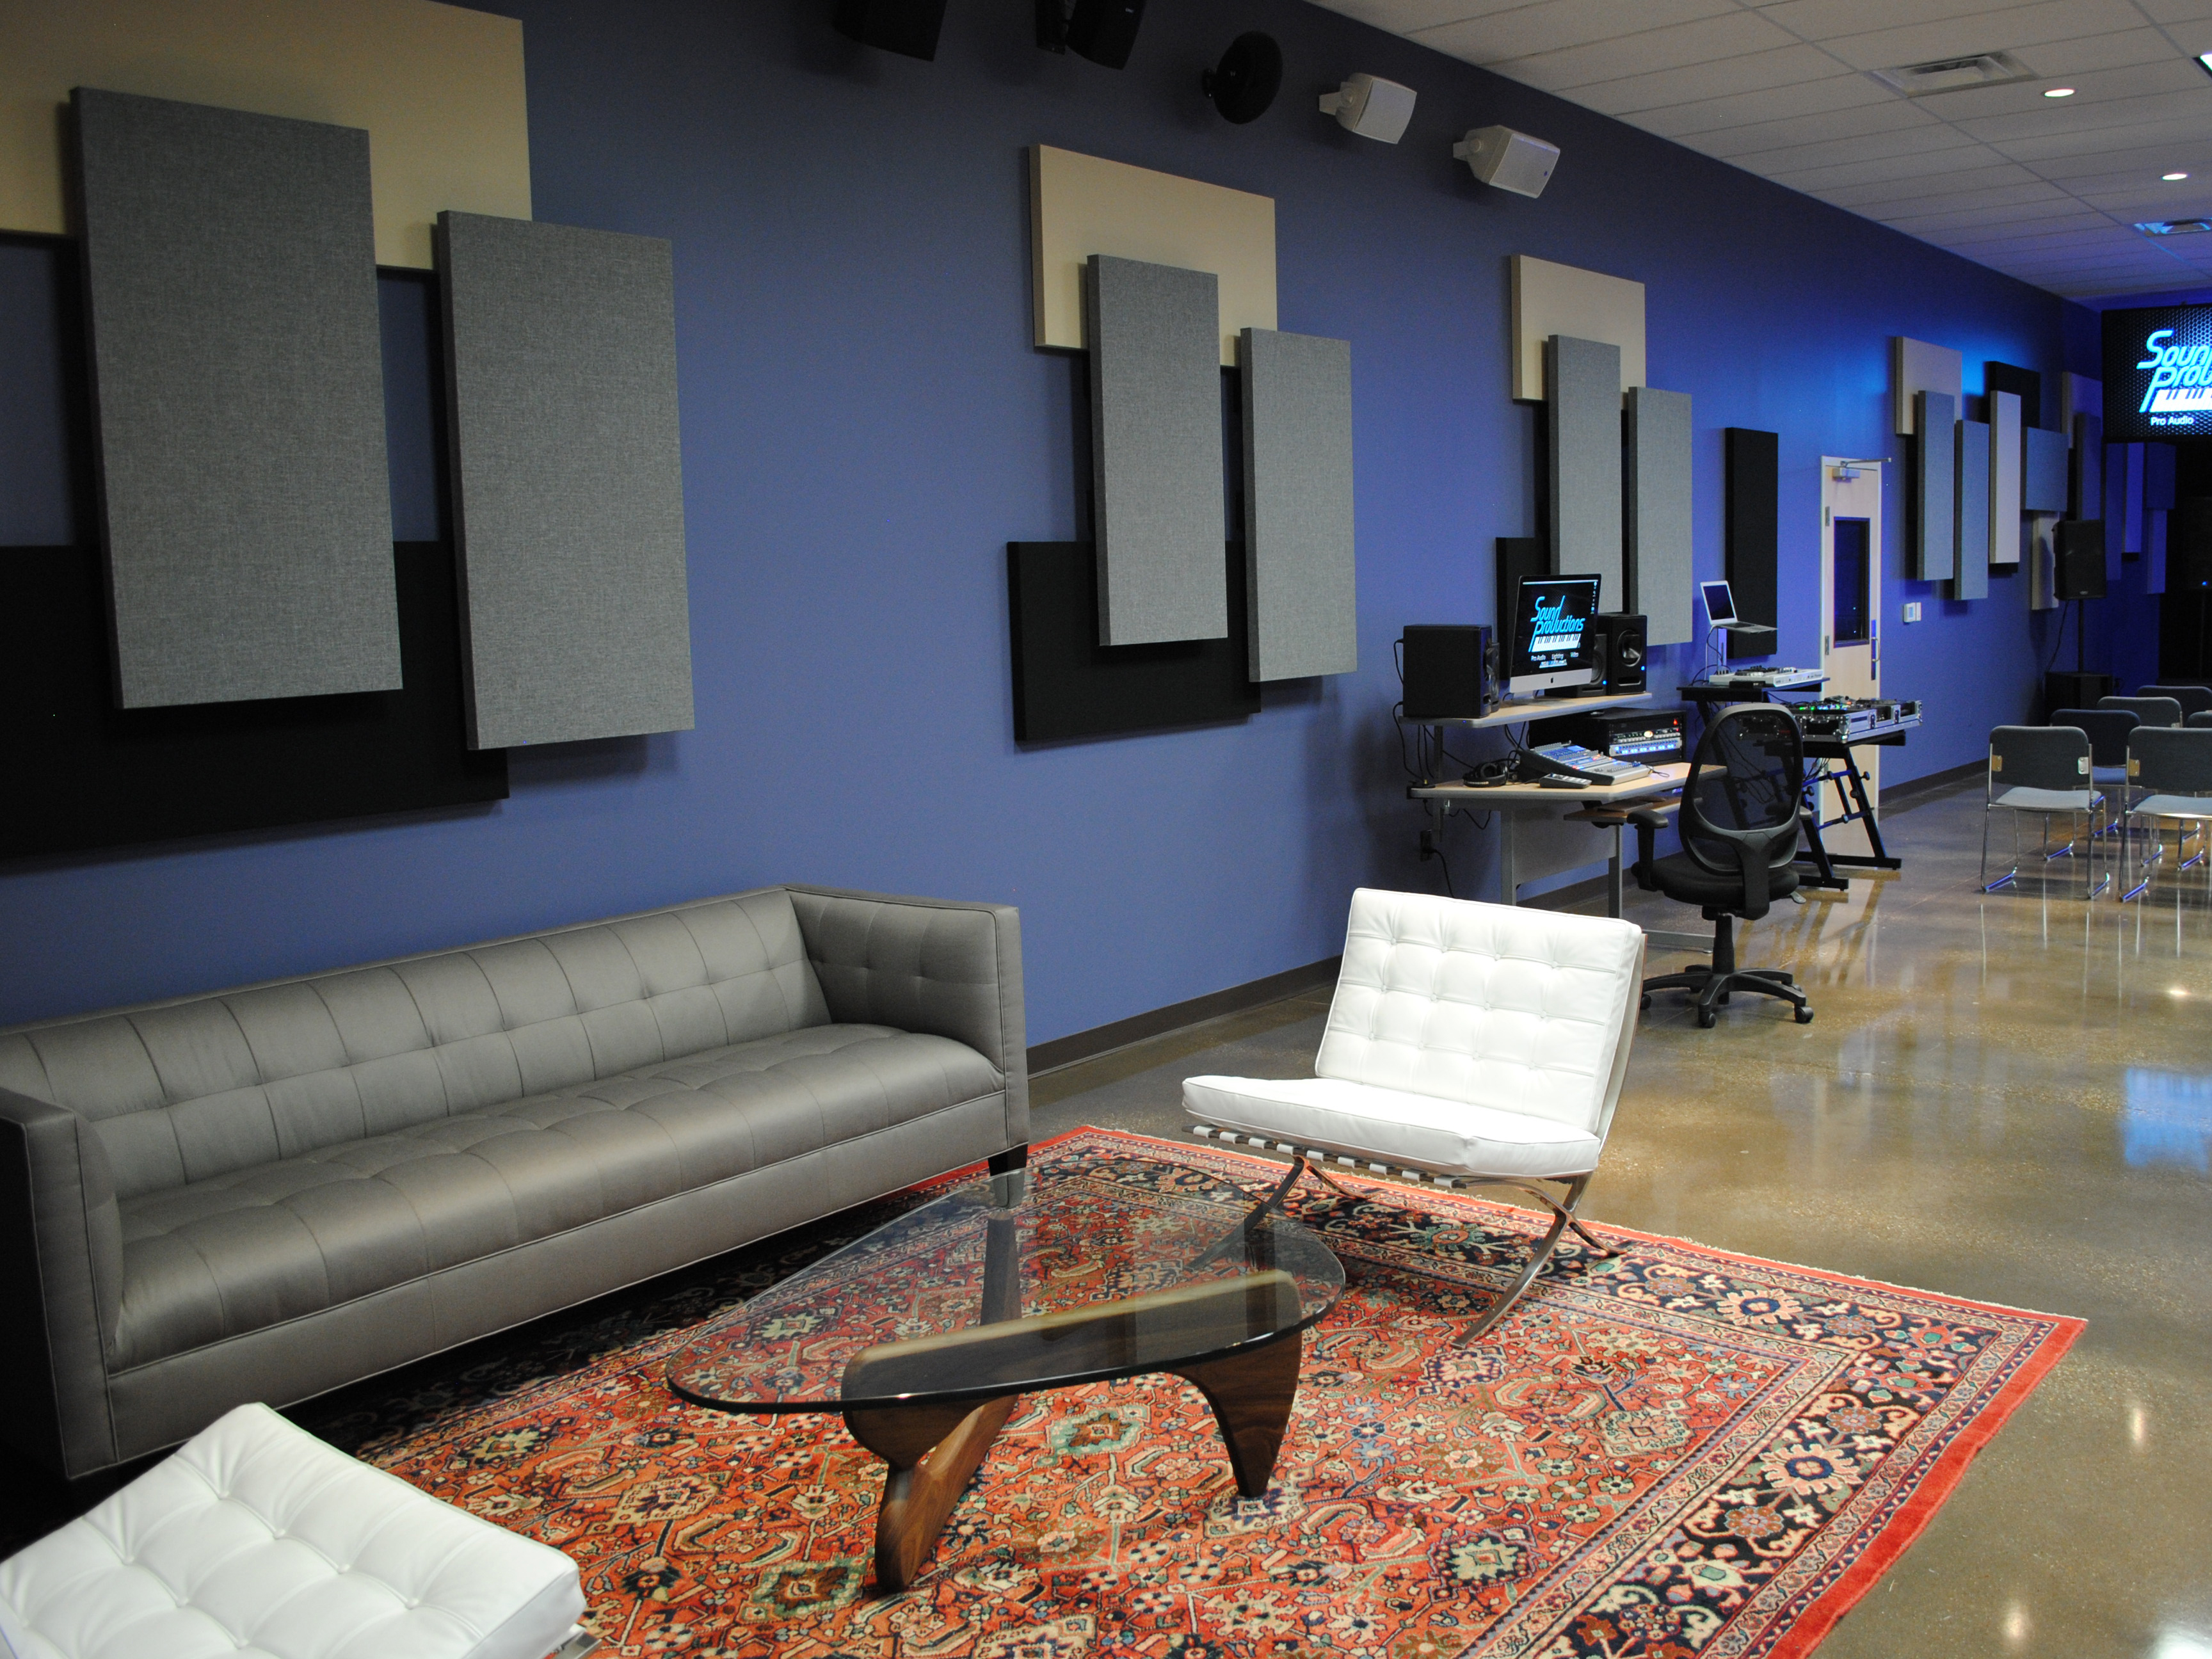 Broadway Panels in Sound Productions space